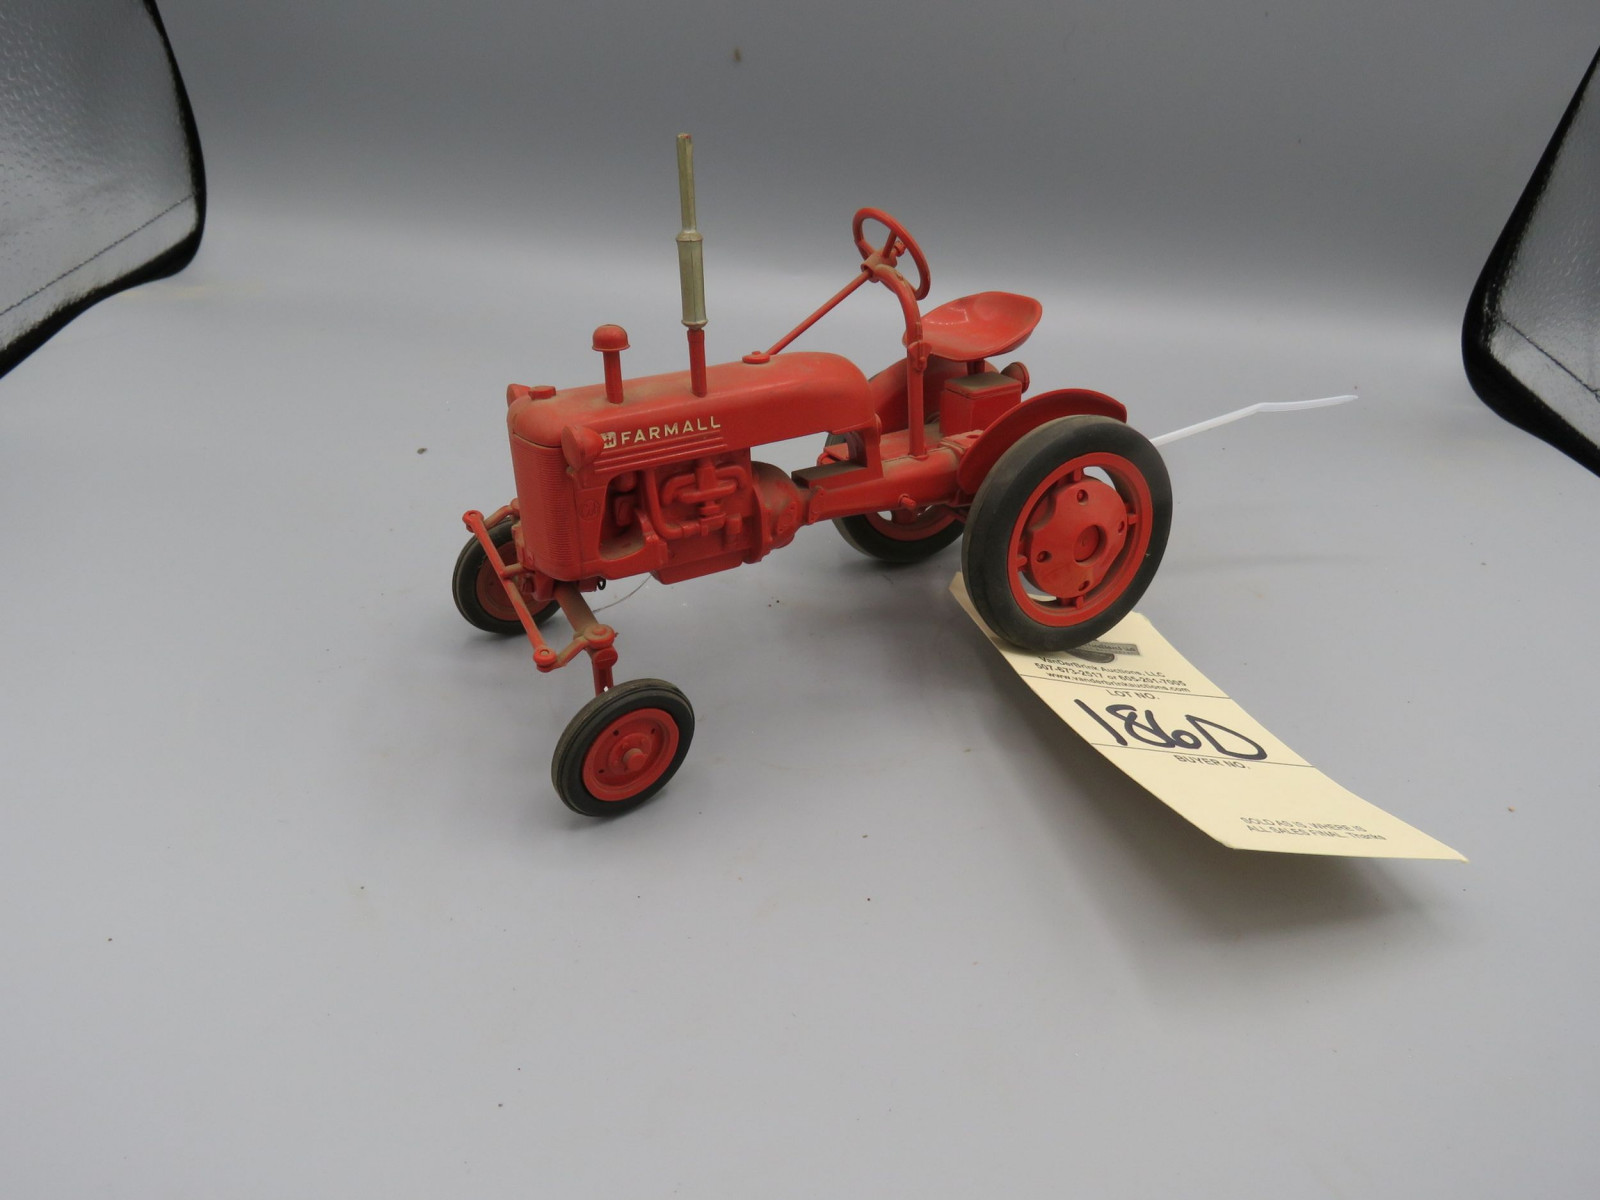 Plastic/rubber B Farmall Toy - Image 1